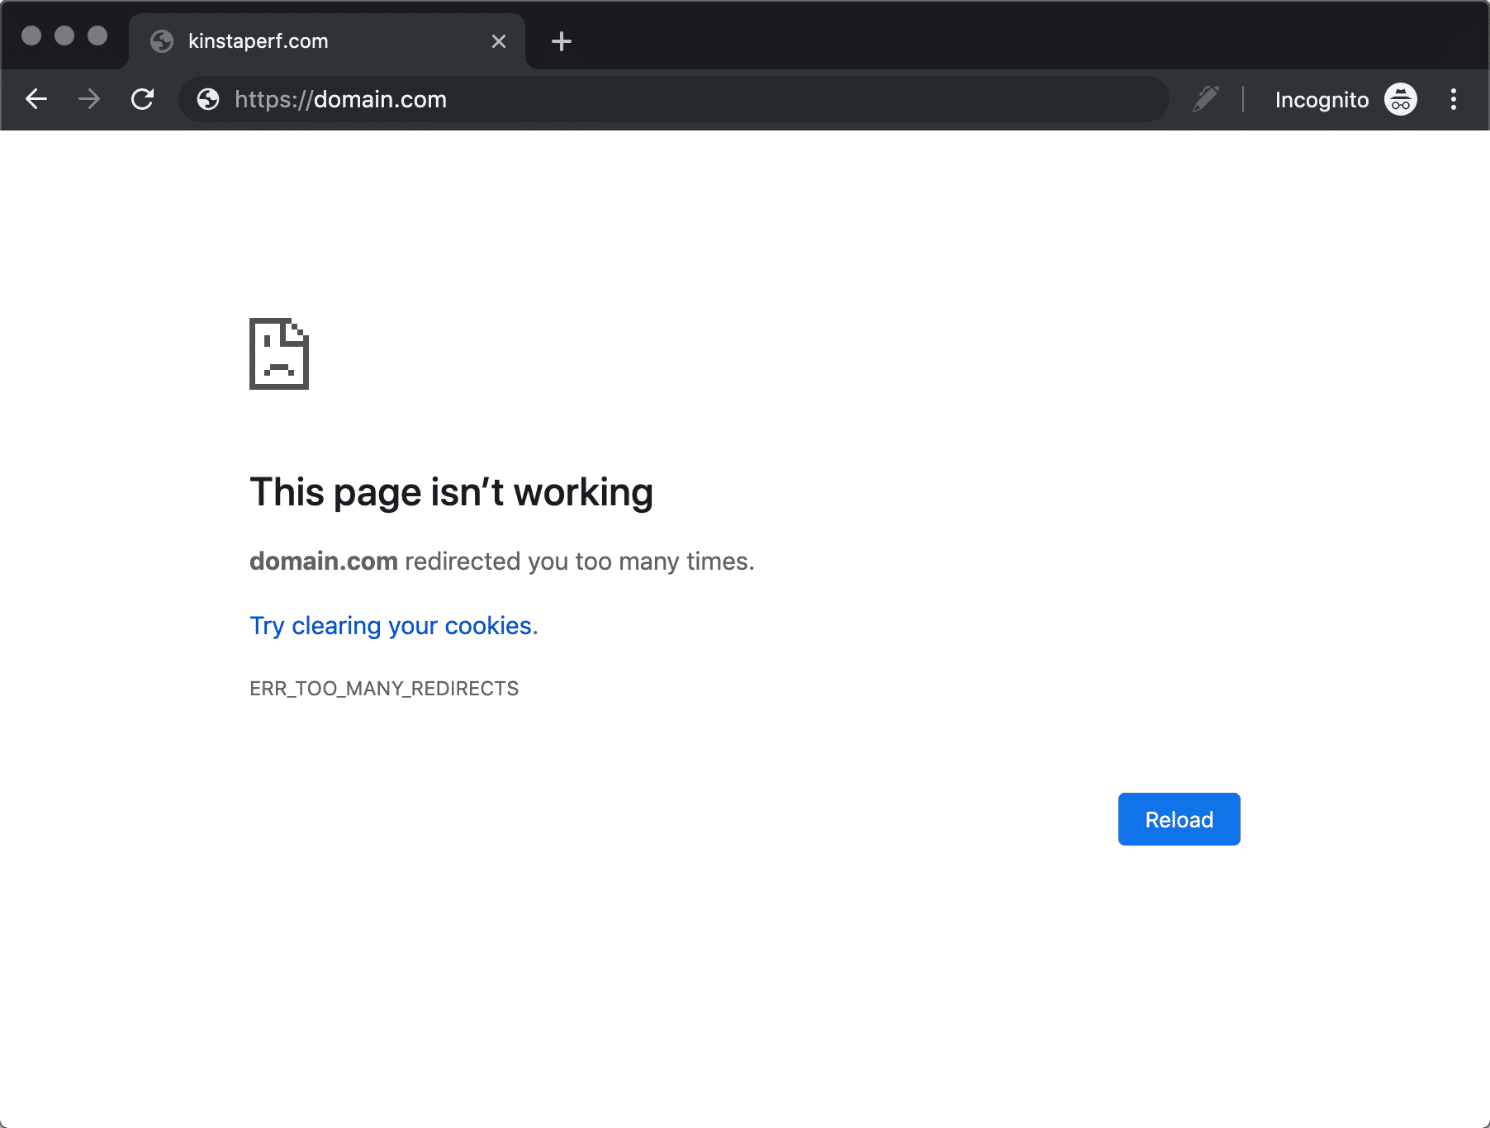 Chrome - Too Many Redirects